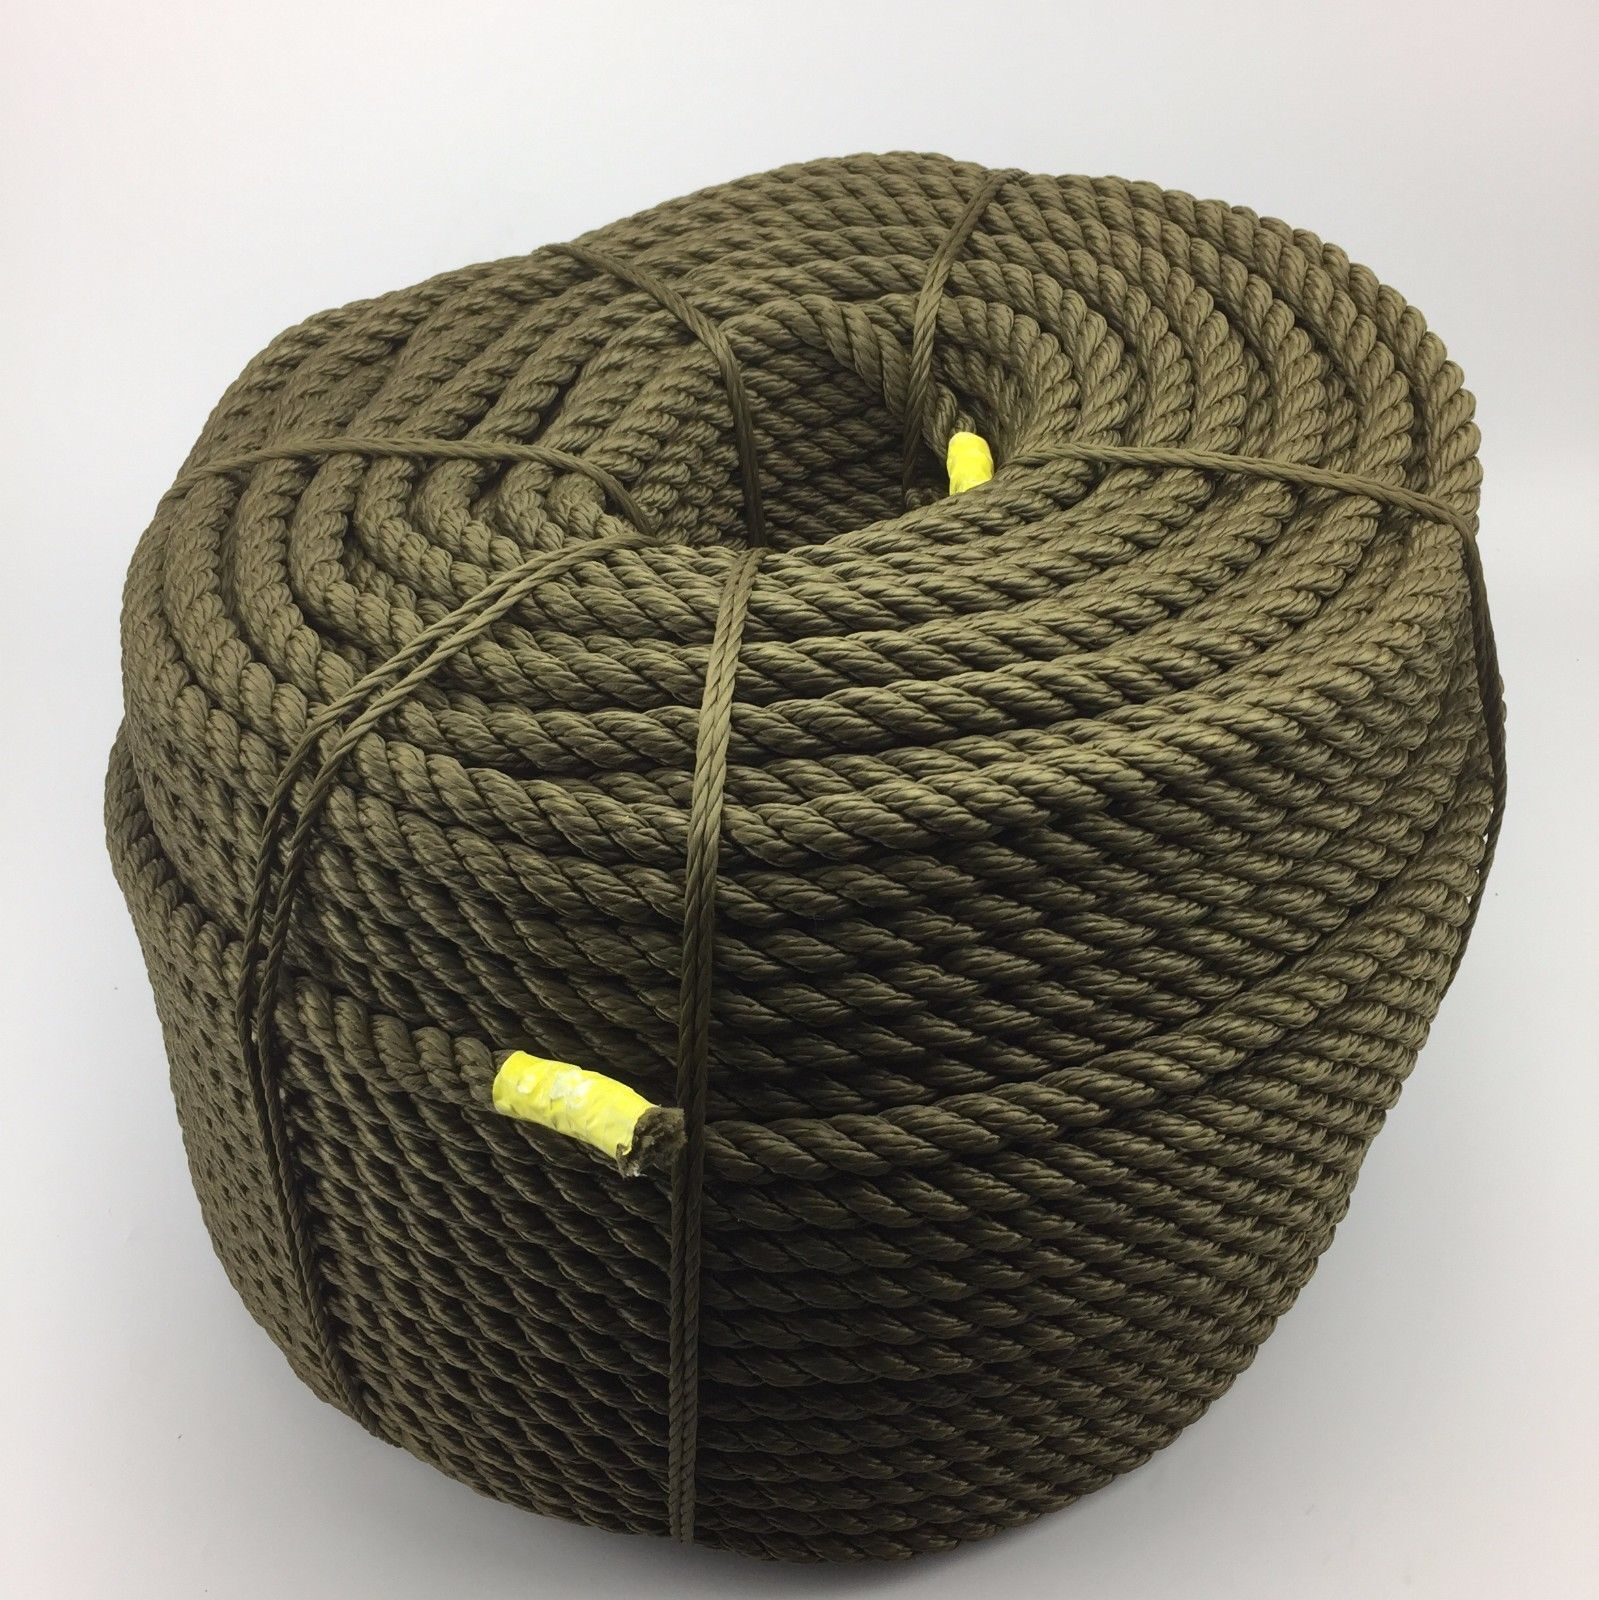 14mm Olive 3 Strand Multifilament x 75 Metres (Floating Rope) Softline Rope